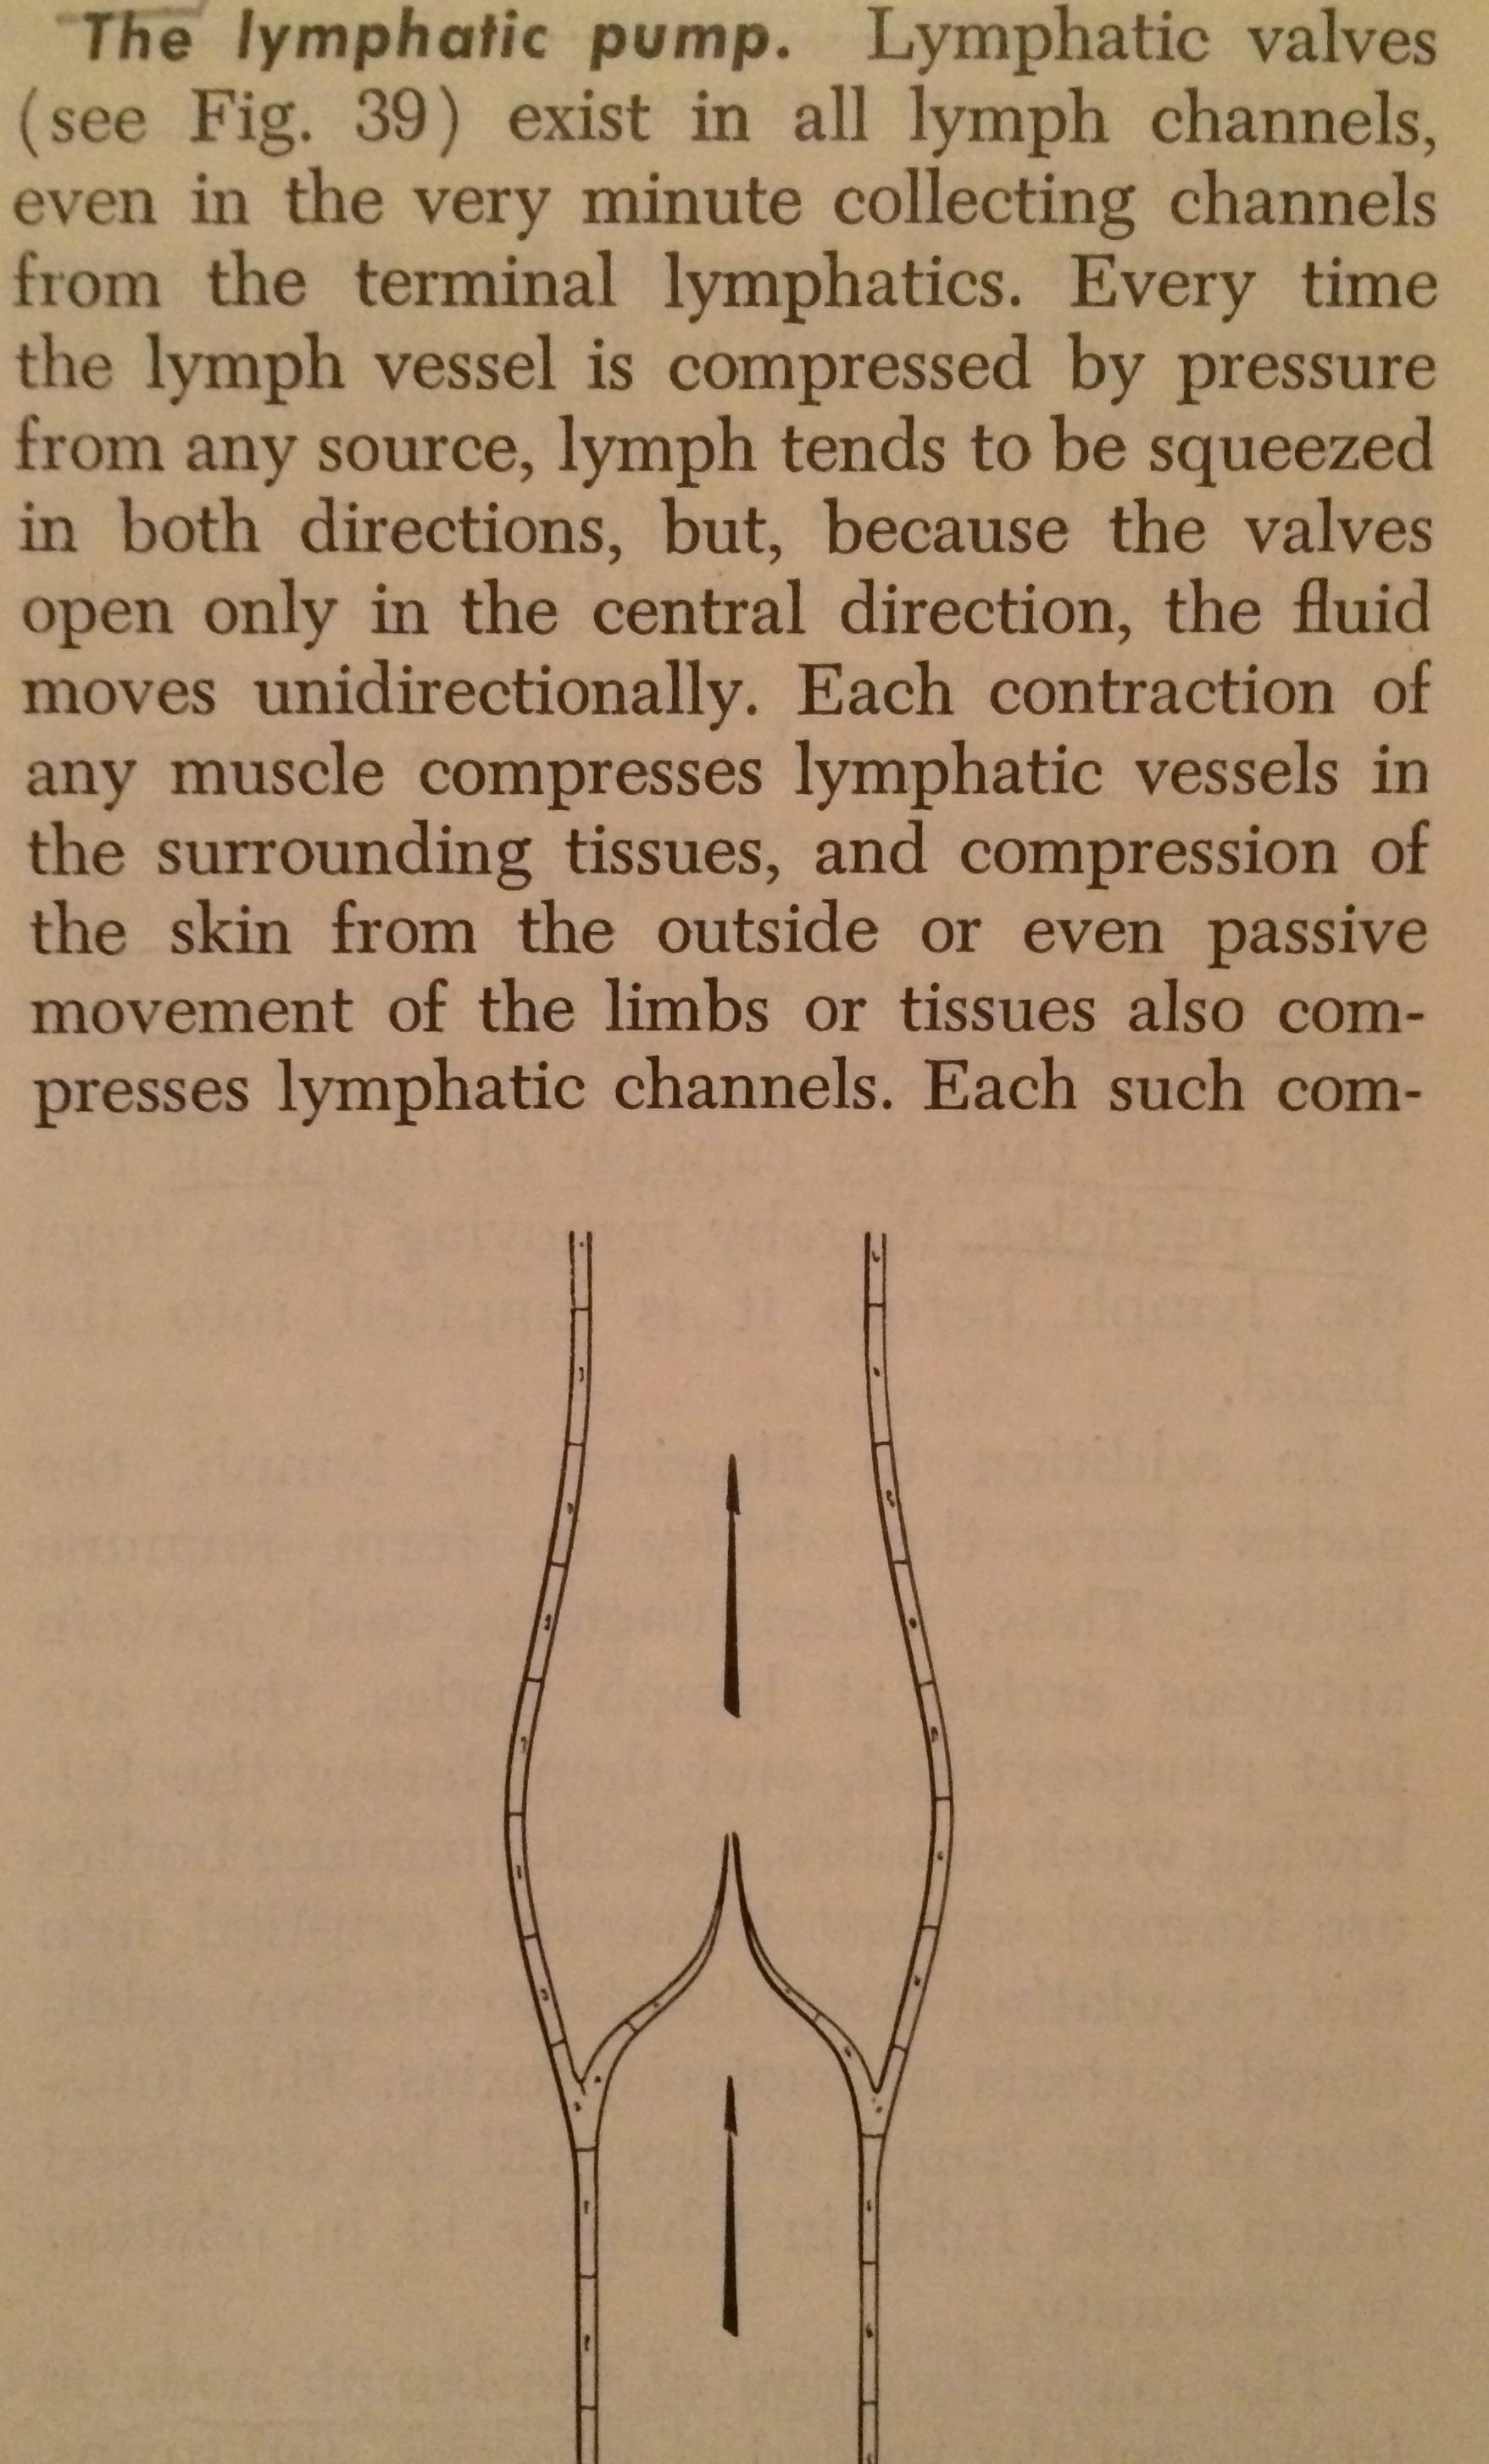 Text of Medical Physiology, 1961 2nd ed., p. 65